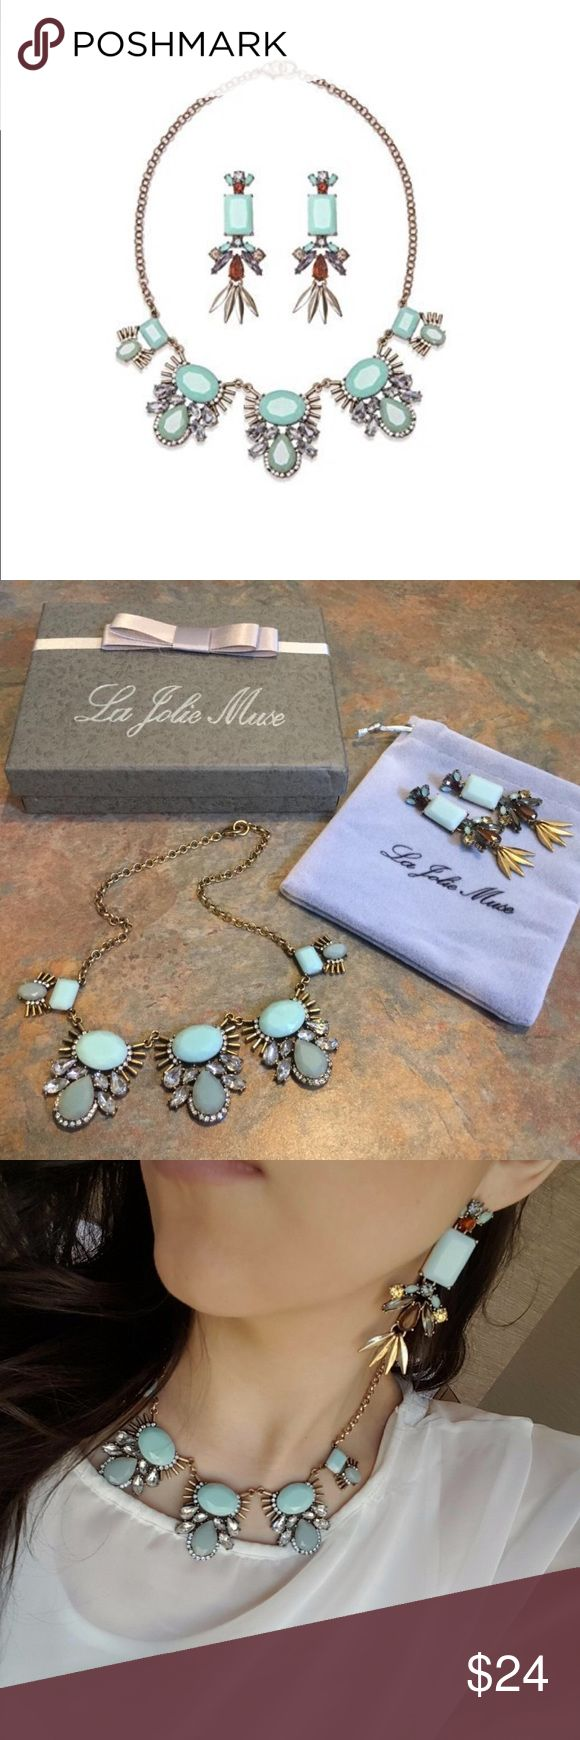 """💠New💠 """"Laura"""" Classy Mint Necklace Set Add a solid and long lasting piece to your wardrobe!  💠NECKLACE- Beautiful matte mint-colored rhinestones are beset by crystal stones to give this piece its upscale look. Perimeter Size: 18""""; Weight: 50g. 💠EARRINGS- Opaque mint-colored stones create the centerpieces, while sparkling rhinestones in shades of chocolate and amber add a rich color contrast to the set. Clusters of gold-toned leaves hang from the bottom of each earring to add a stunning…"""